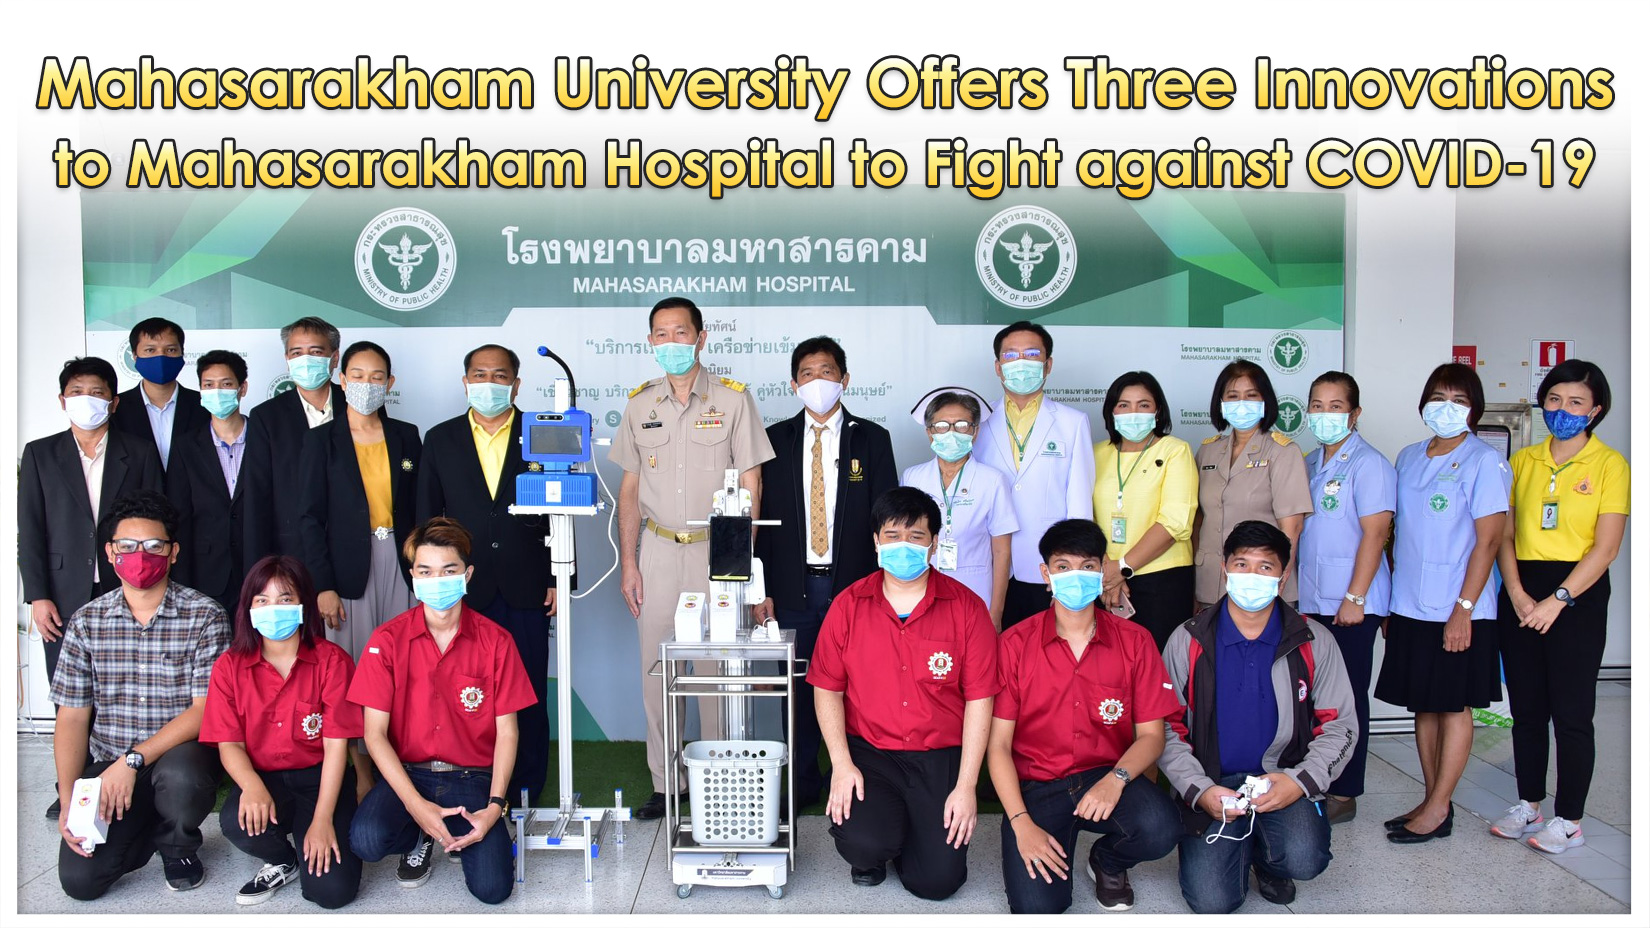 Mahasarakham University Offers Three Innovations to Mahasarakham Hospital to Fight against COVID-19